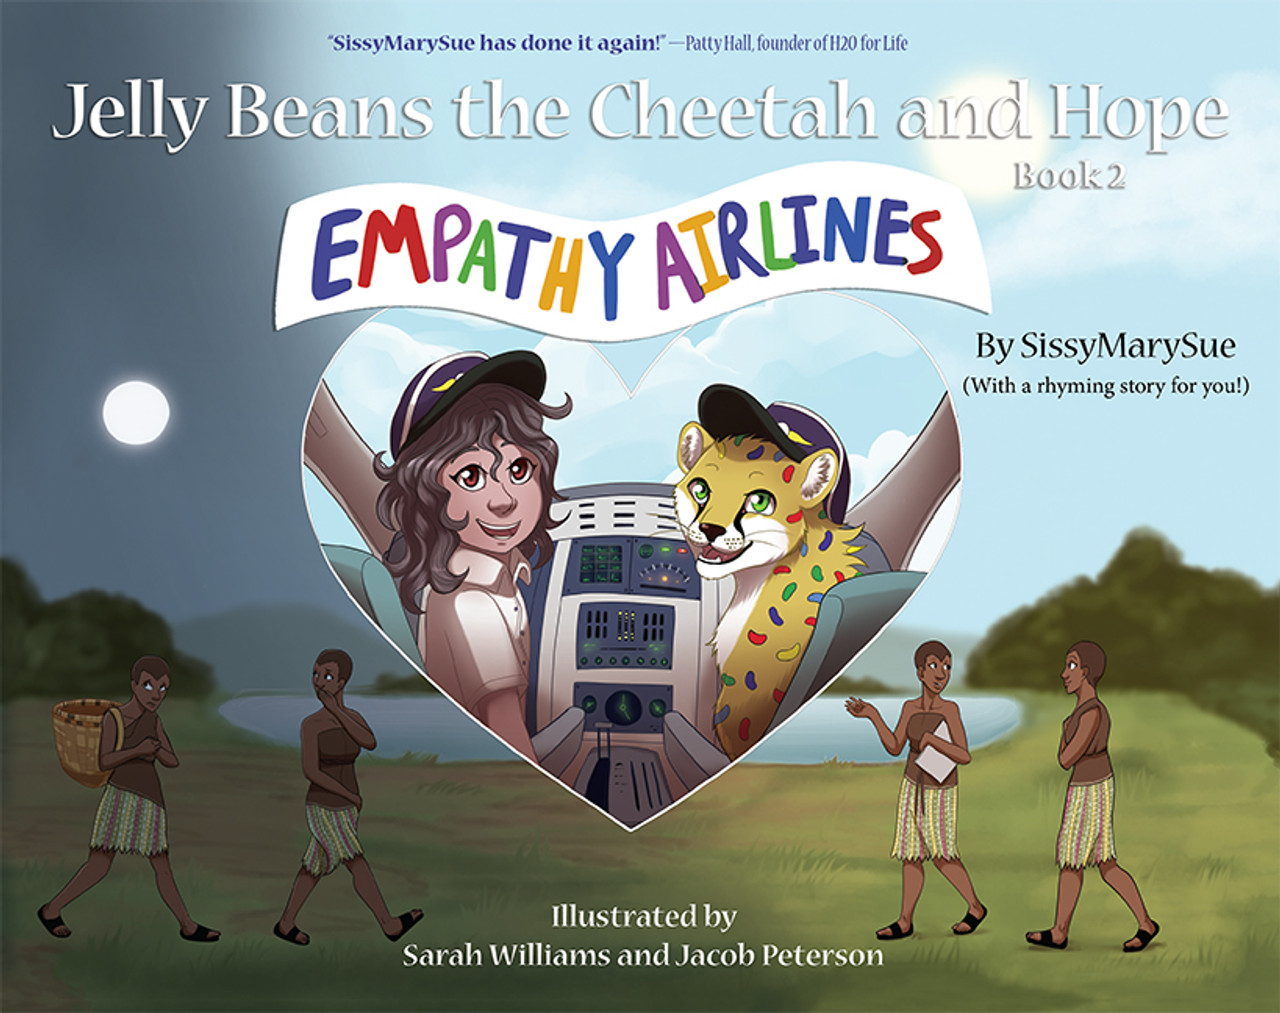 Empathy Airlines: Jelly Beans the Cheetah and Hope Book 2